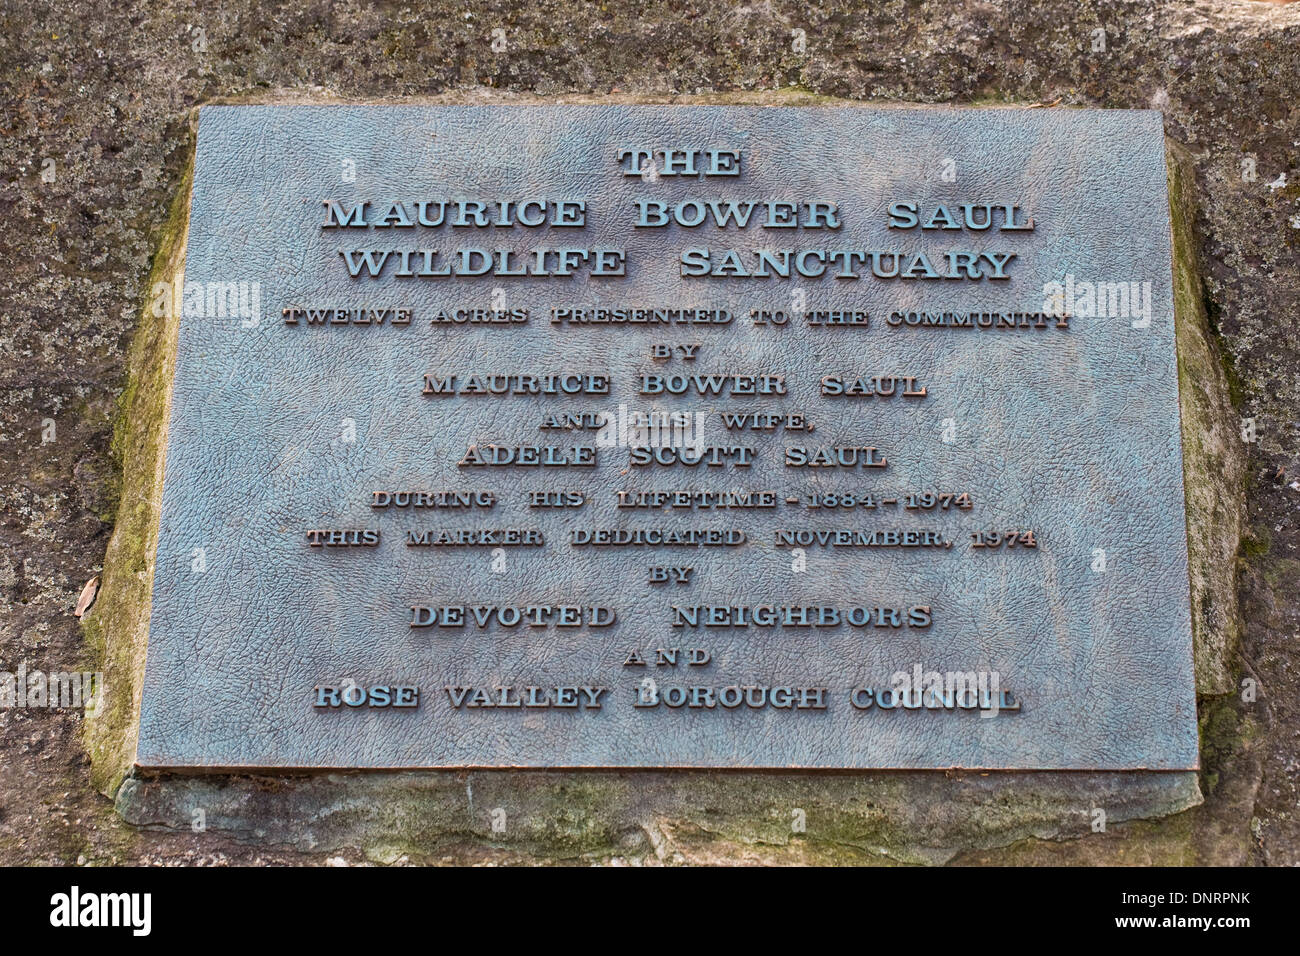 Memorial plaque to Maurice Bower and Adele Scott Saul, Pennsylvania, USA - Stock Image